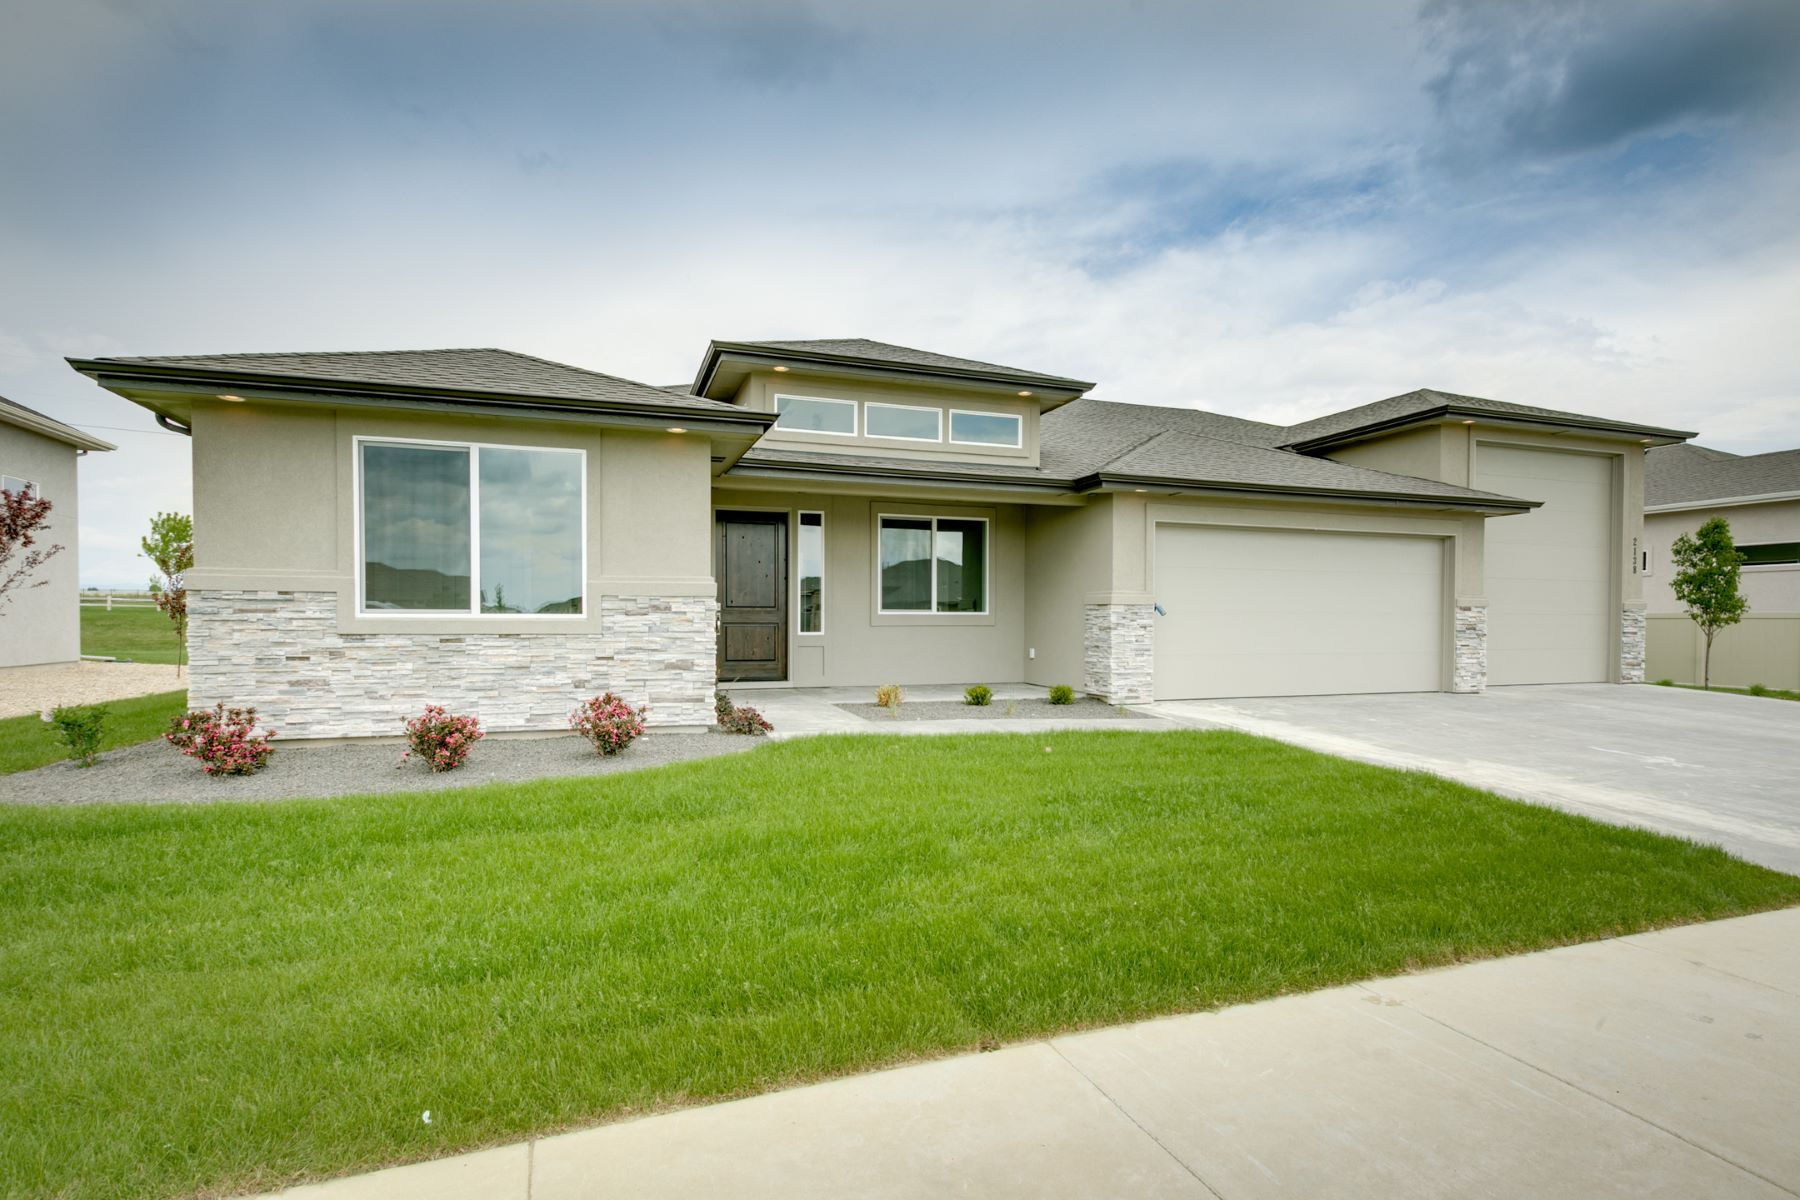 Single Family Home for Active at 2332 Finsbury Way, Star 2332 N Finsbury Way Star, Idaho 83669 United States